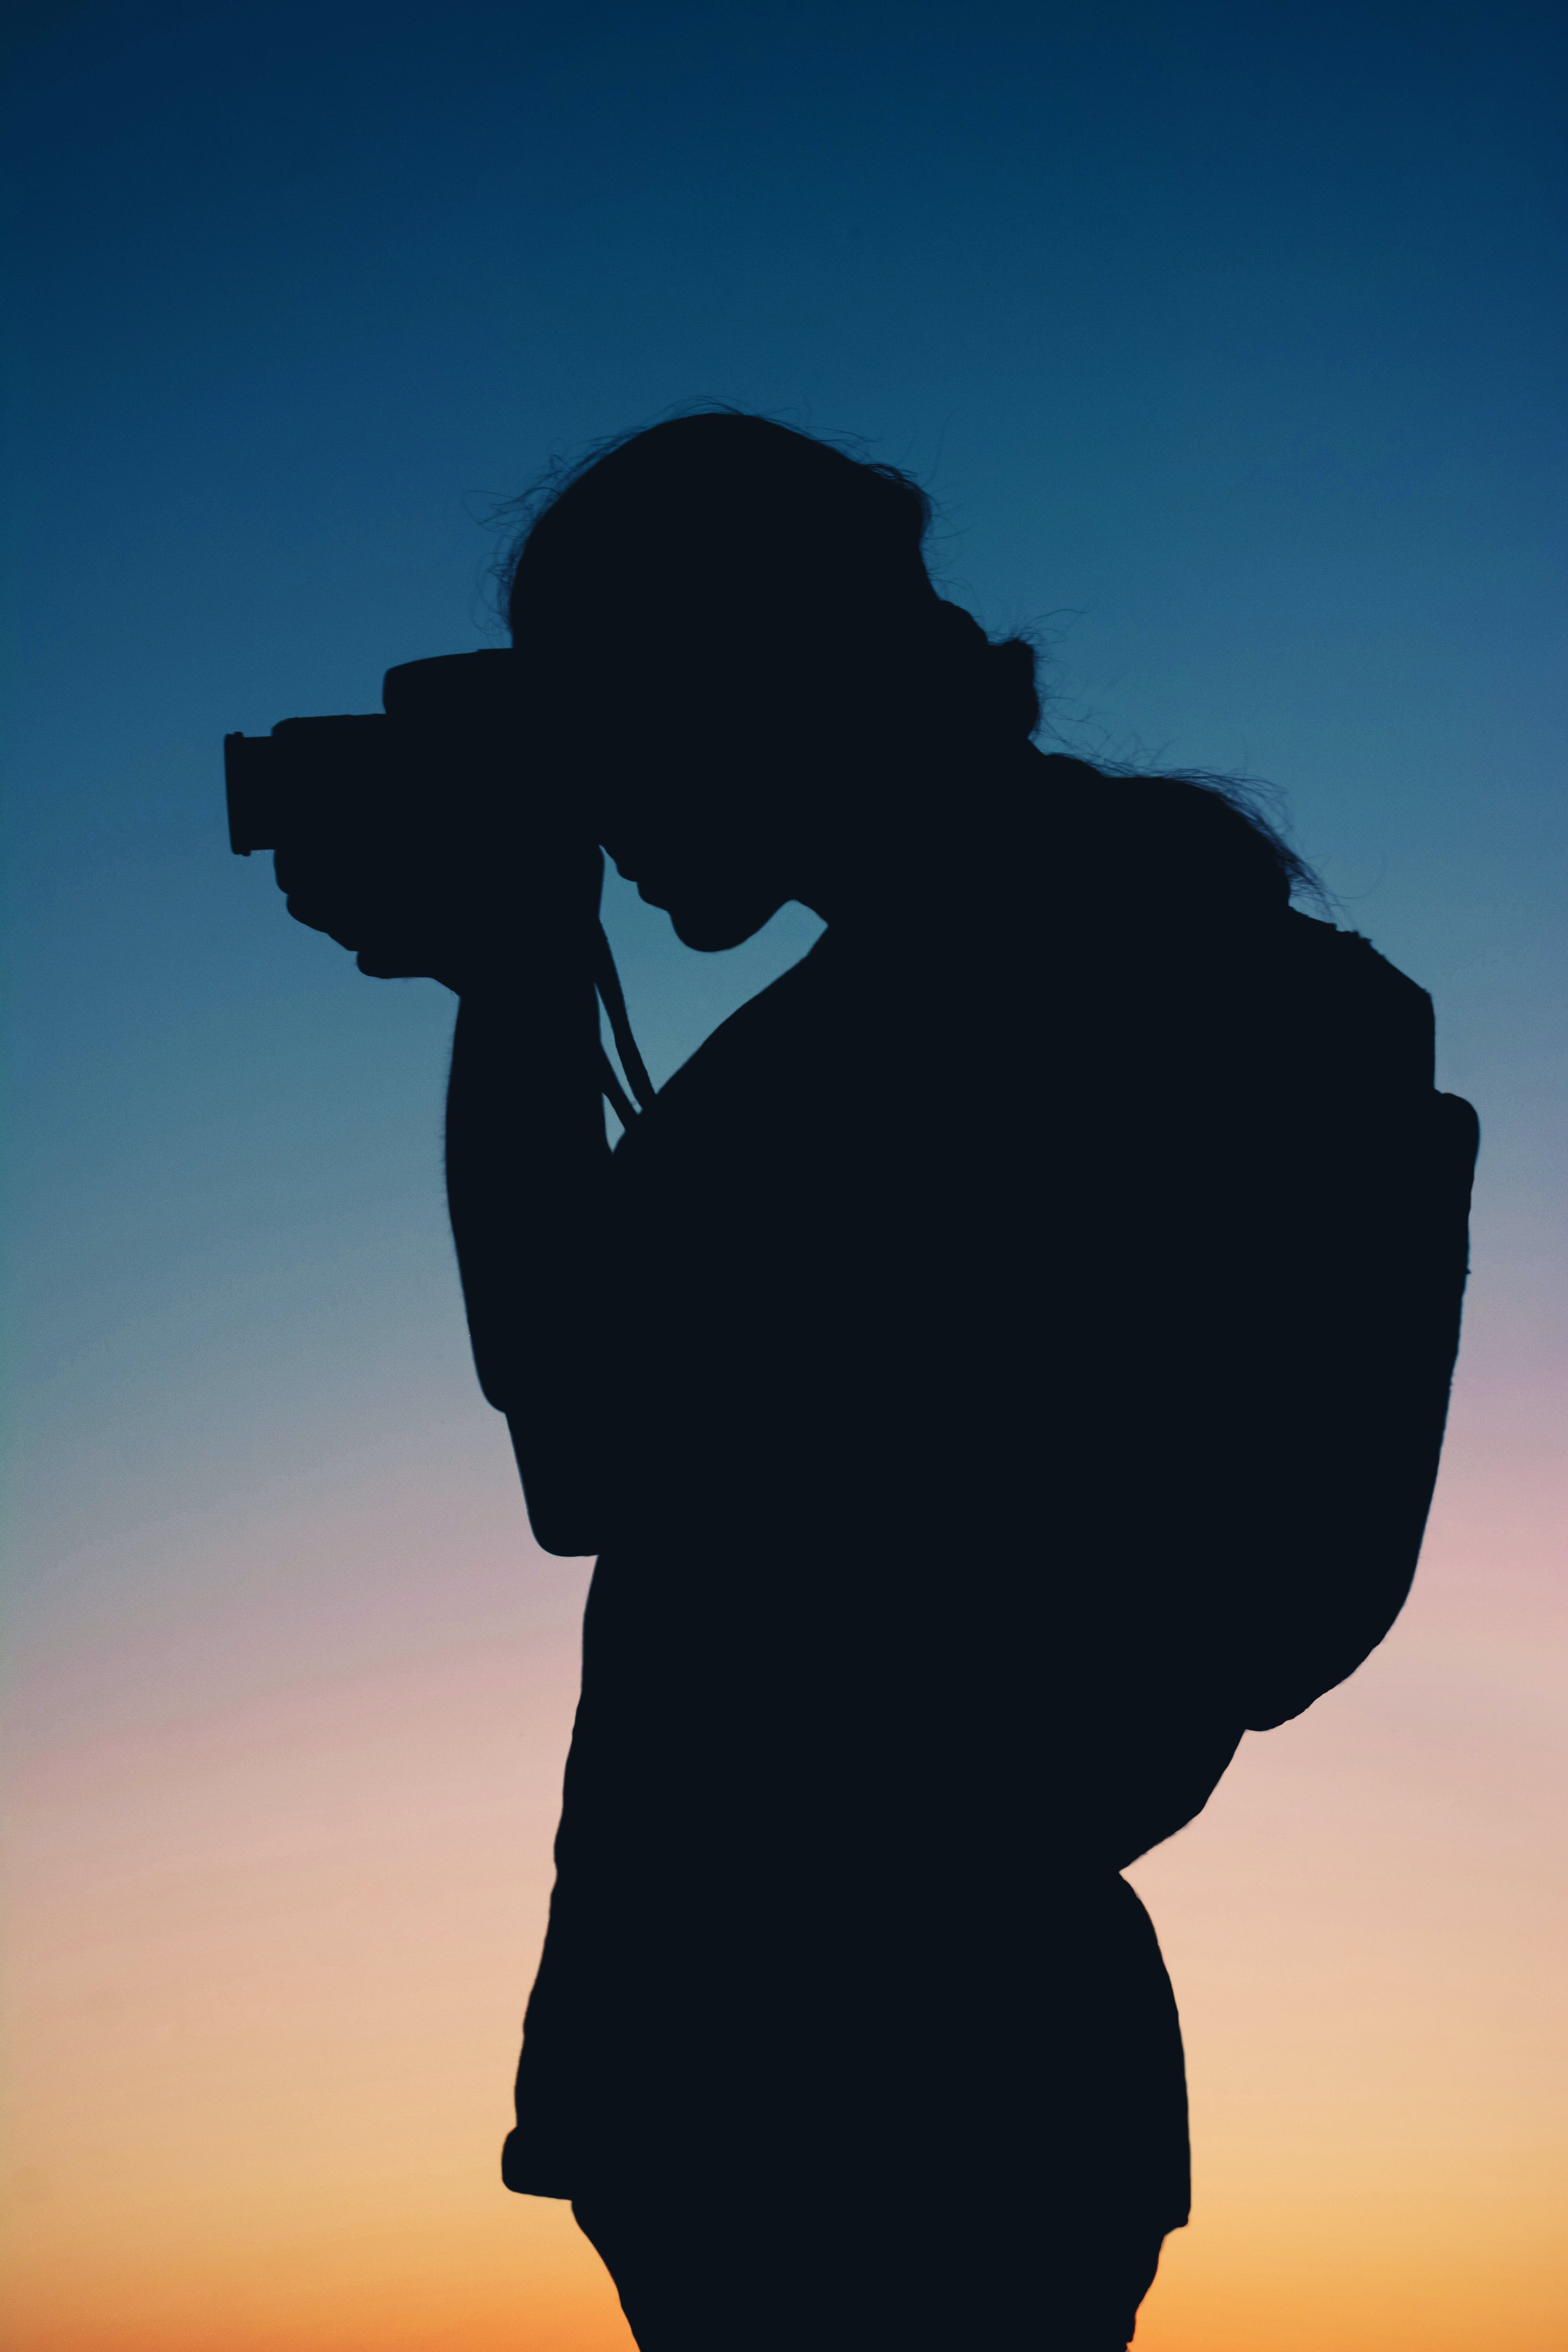 Silhouette of Person Taking Photo With Camera